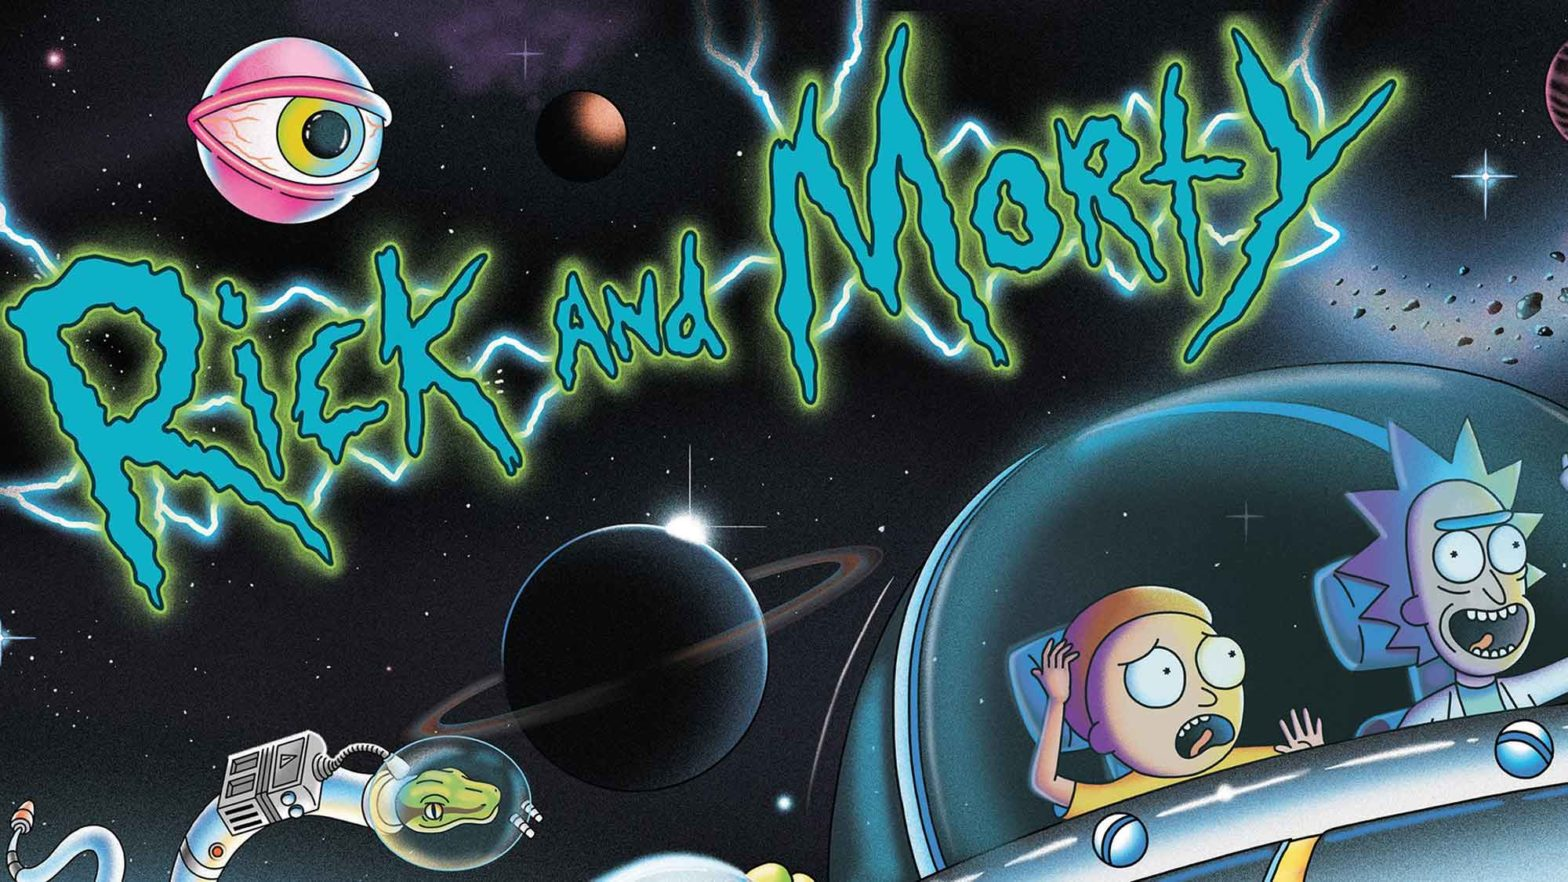 Spooky Pinball Rick and Morty Pinball